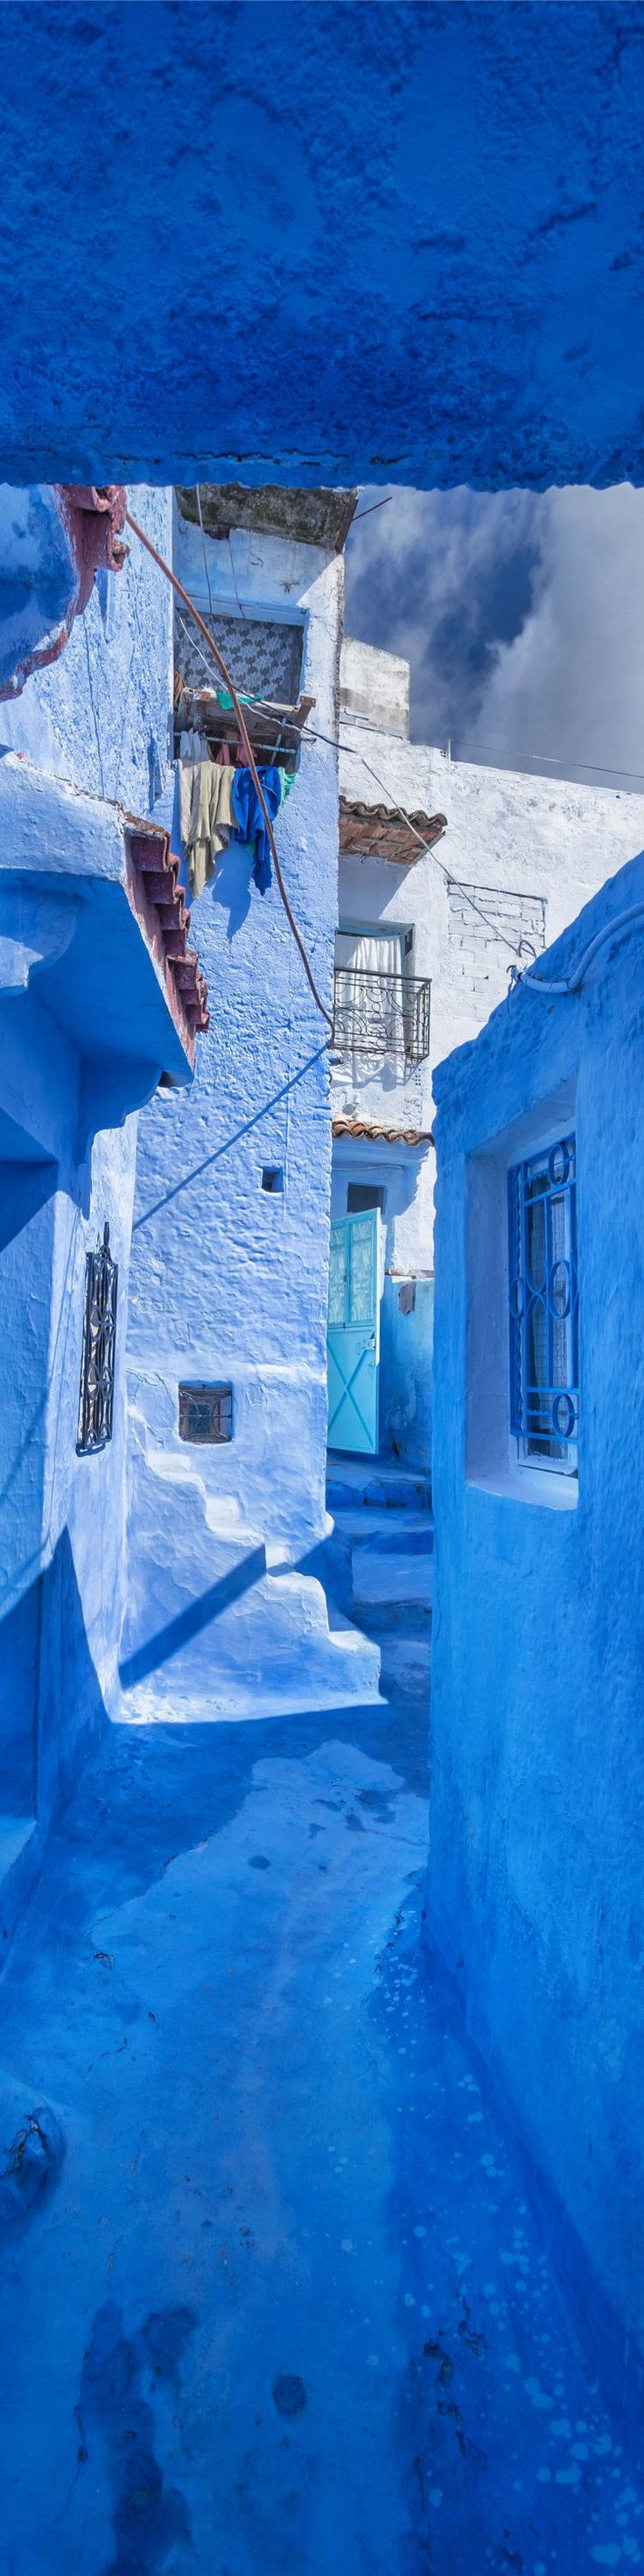 "This little mountain town is painted all in blue! In Morocco - from the Exhibition: ""Cropped for Pinterest"" - photo from #treyratcliff Trey Ratcliff at http://www.StuckInCustoms.com"